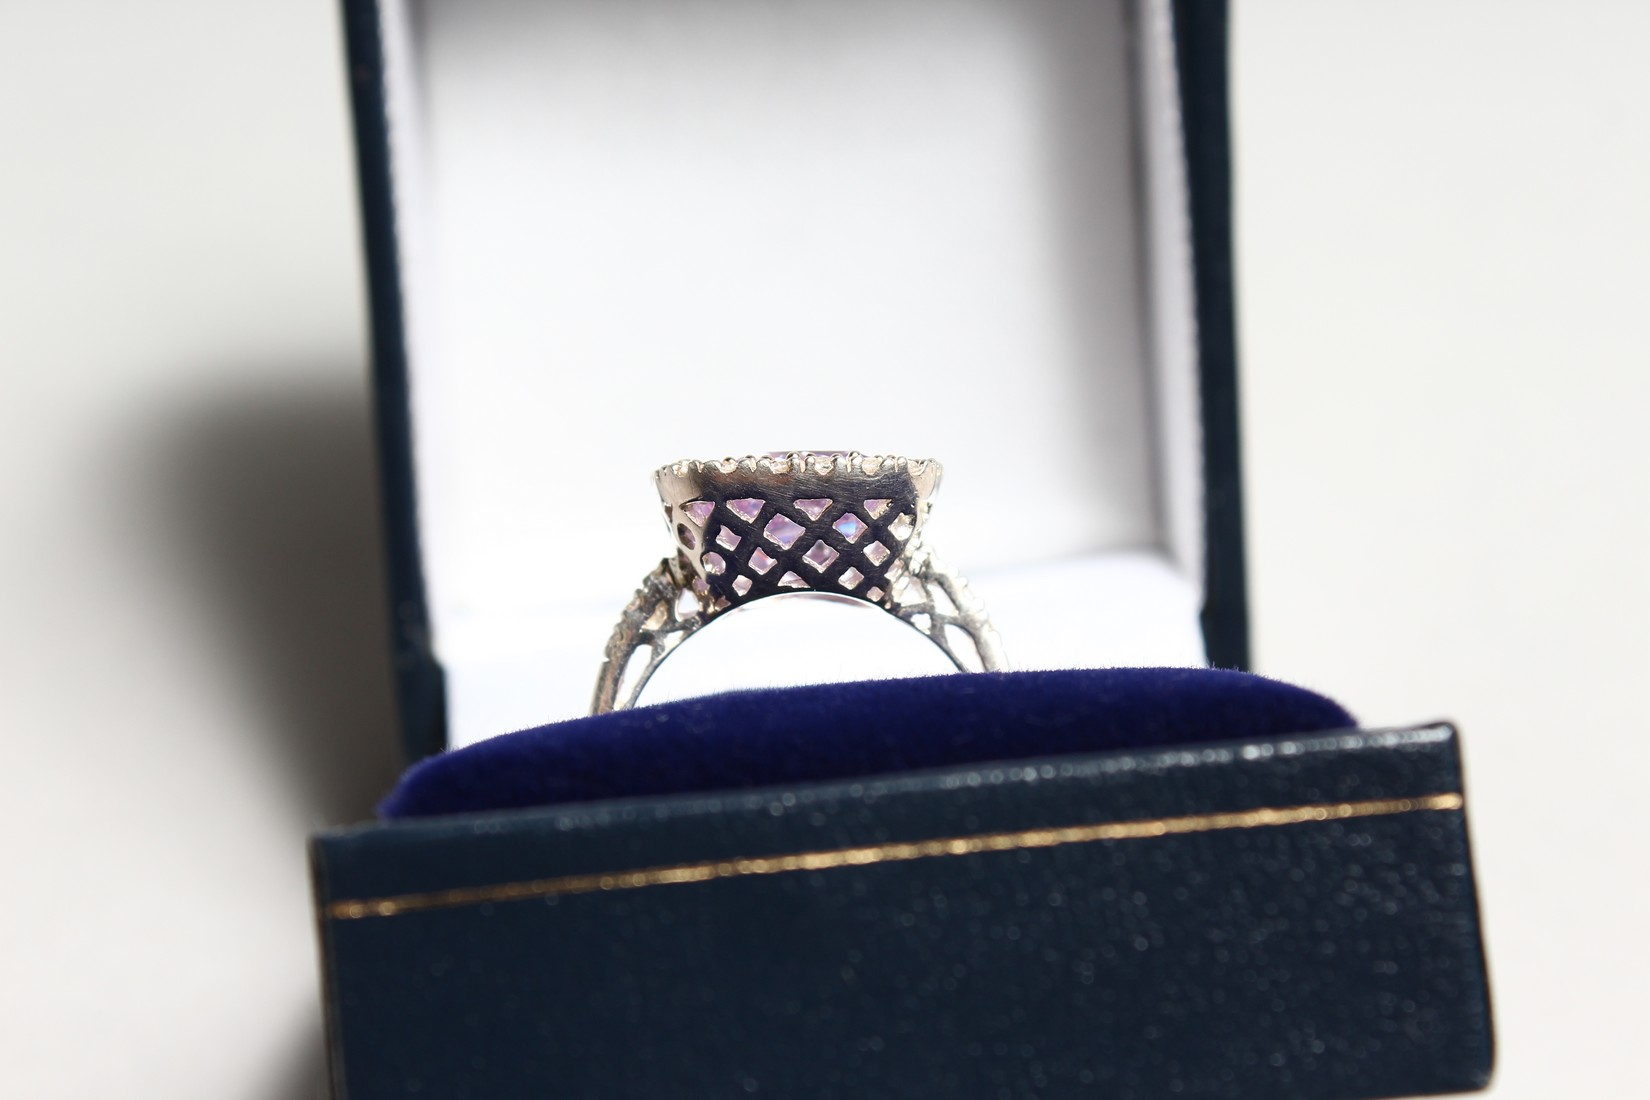 A SILVER CZ RING. - Image 2 of 3